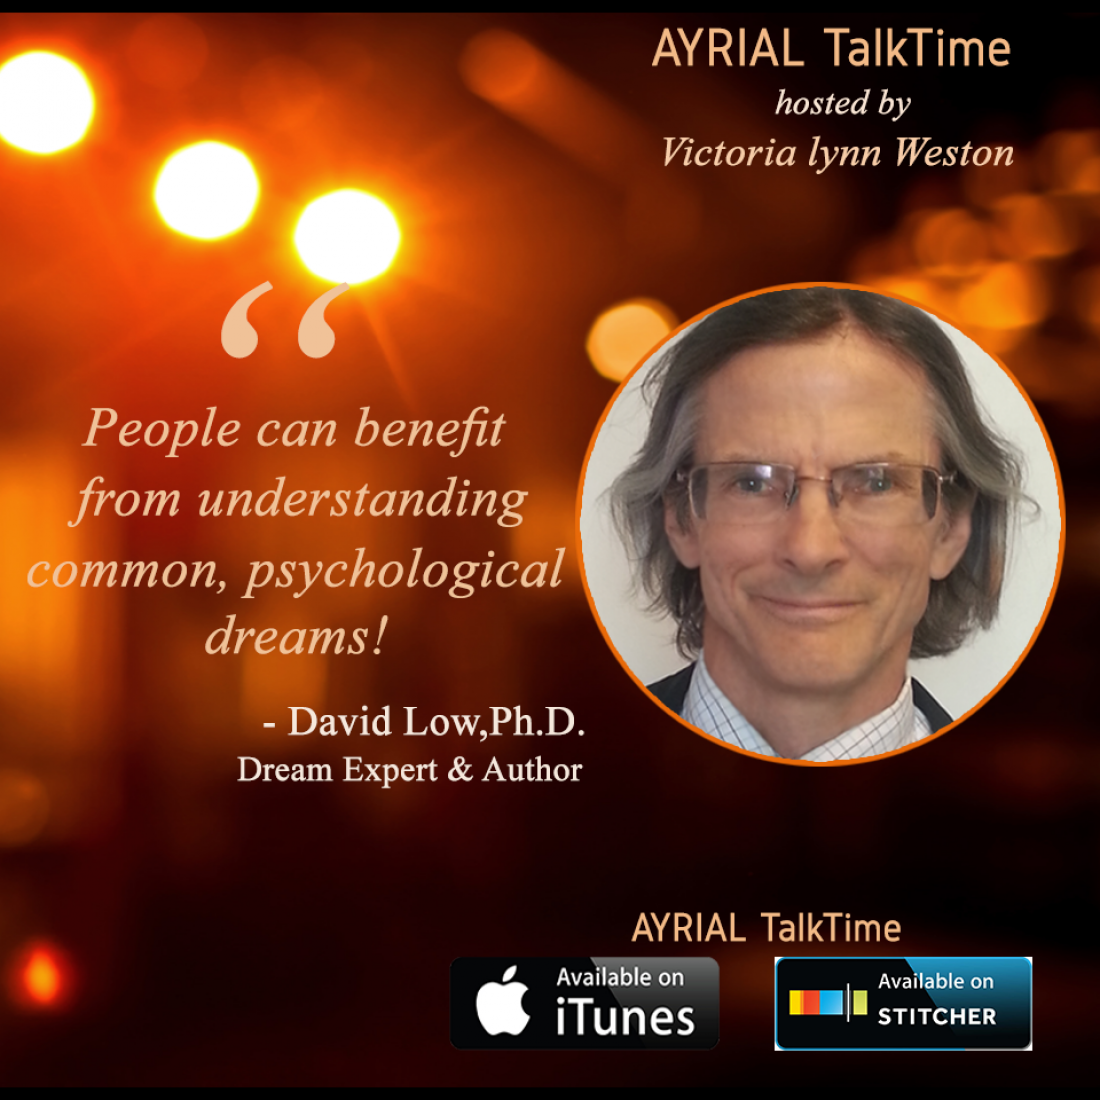 David Low, Ph.D. Dream Expert